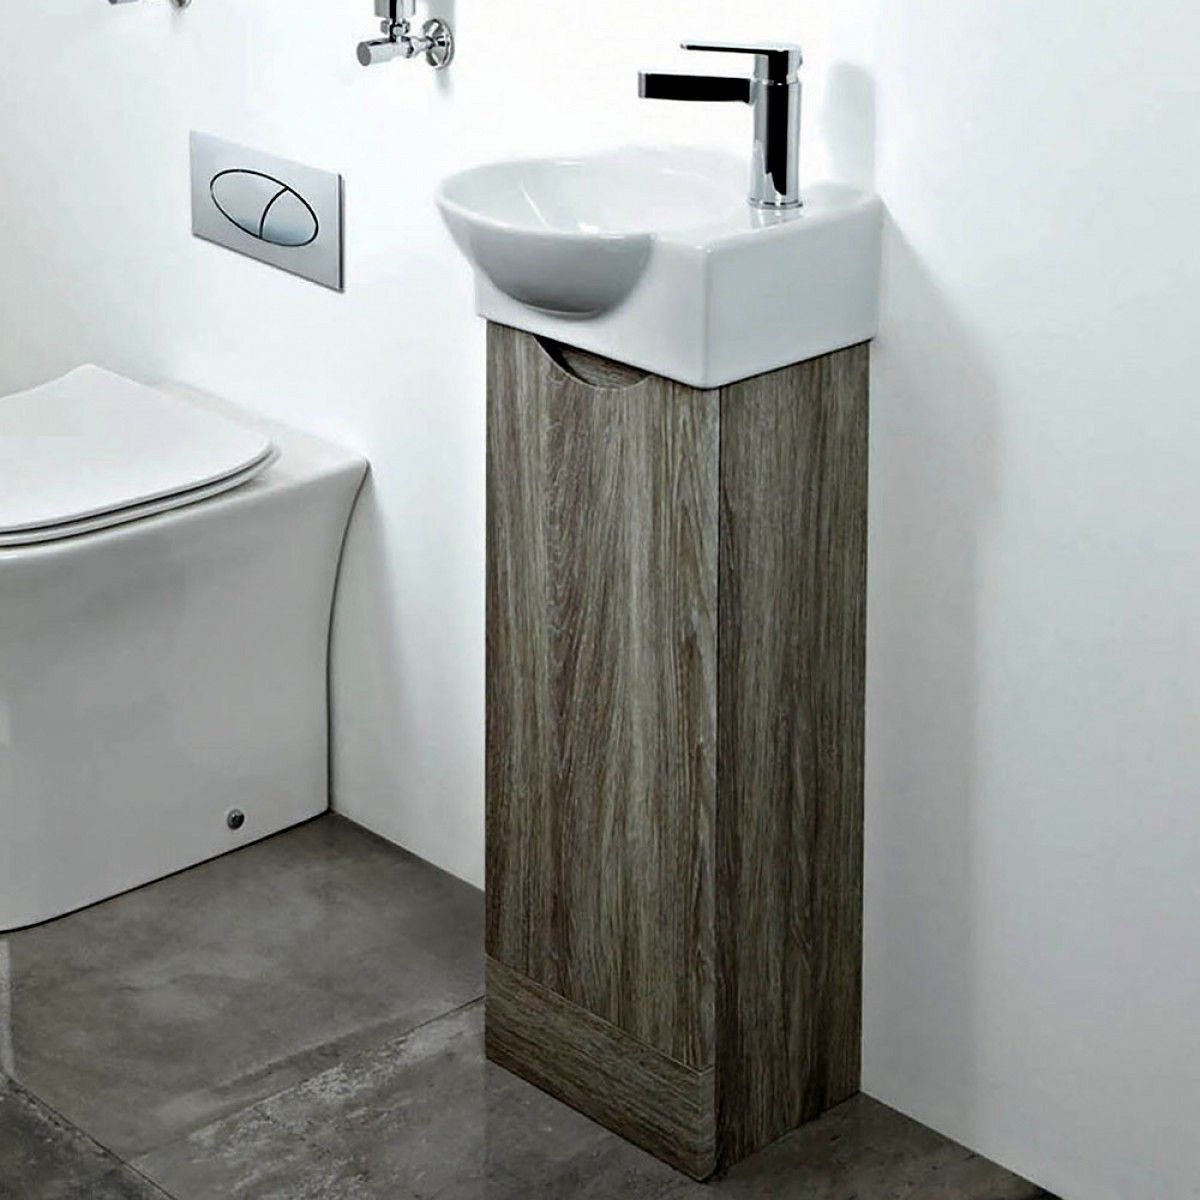 phoenix georgia cloakroom vanity unit with basin uk bathrooms rh ukbathrooms com Bathroom Vanity Unit Wall 30 Oak Bathroom Vanity